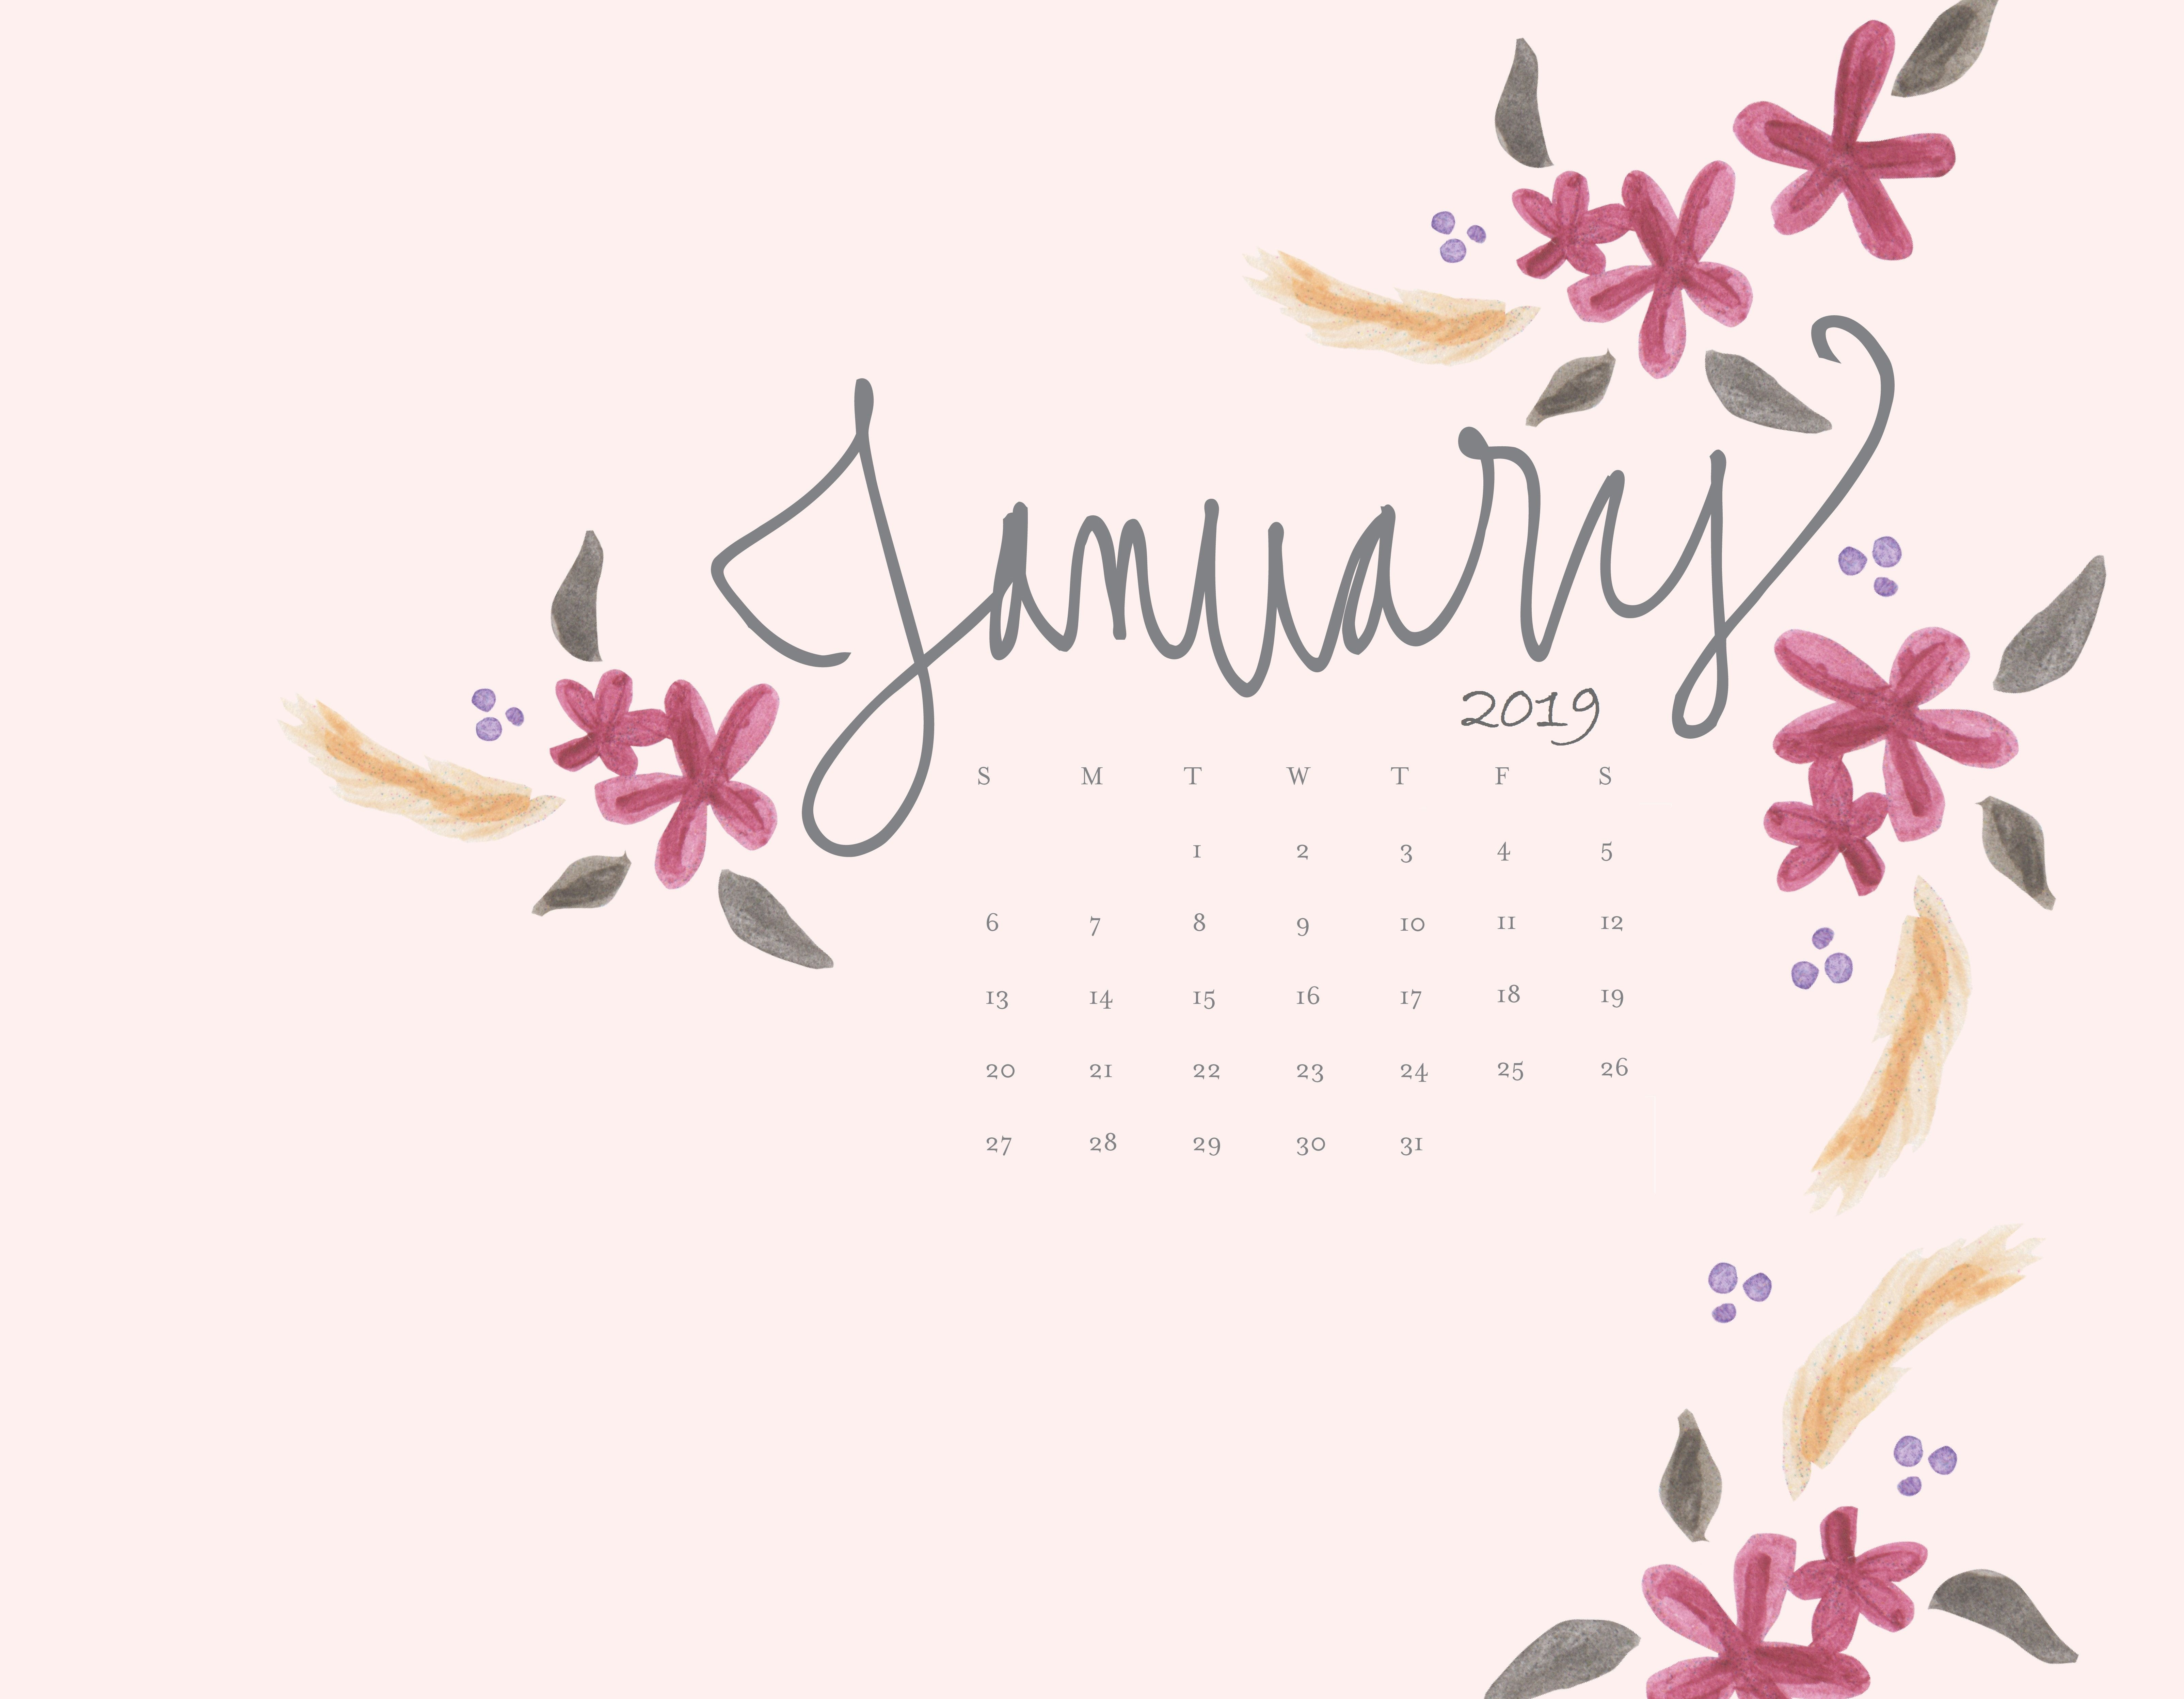 January 2019 Calendar Desktop Background january 2019 hd calendar wallpapers calendar template